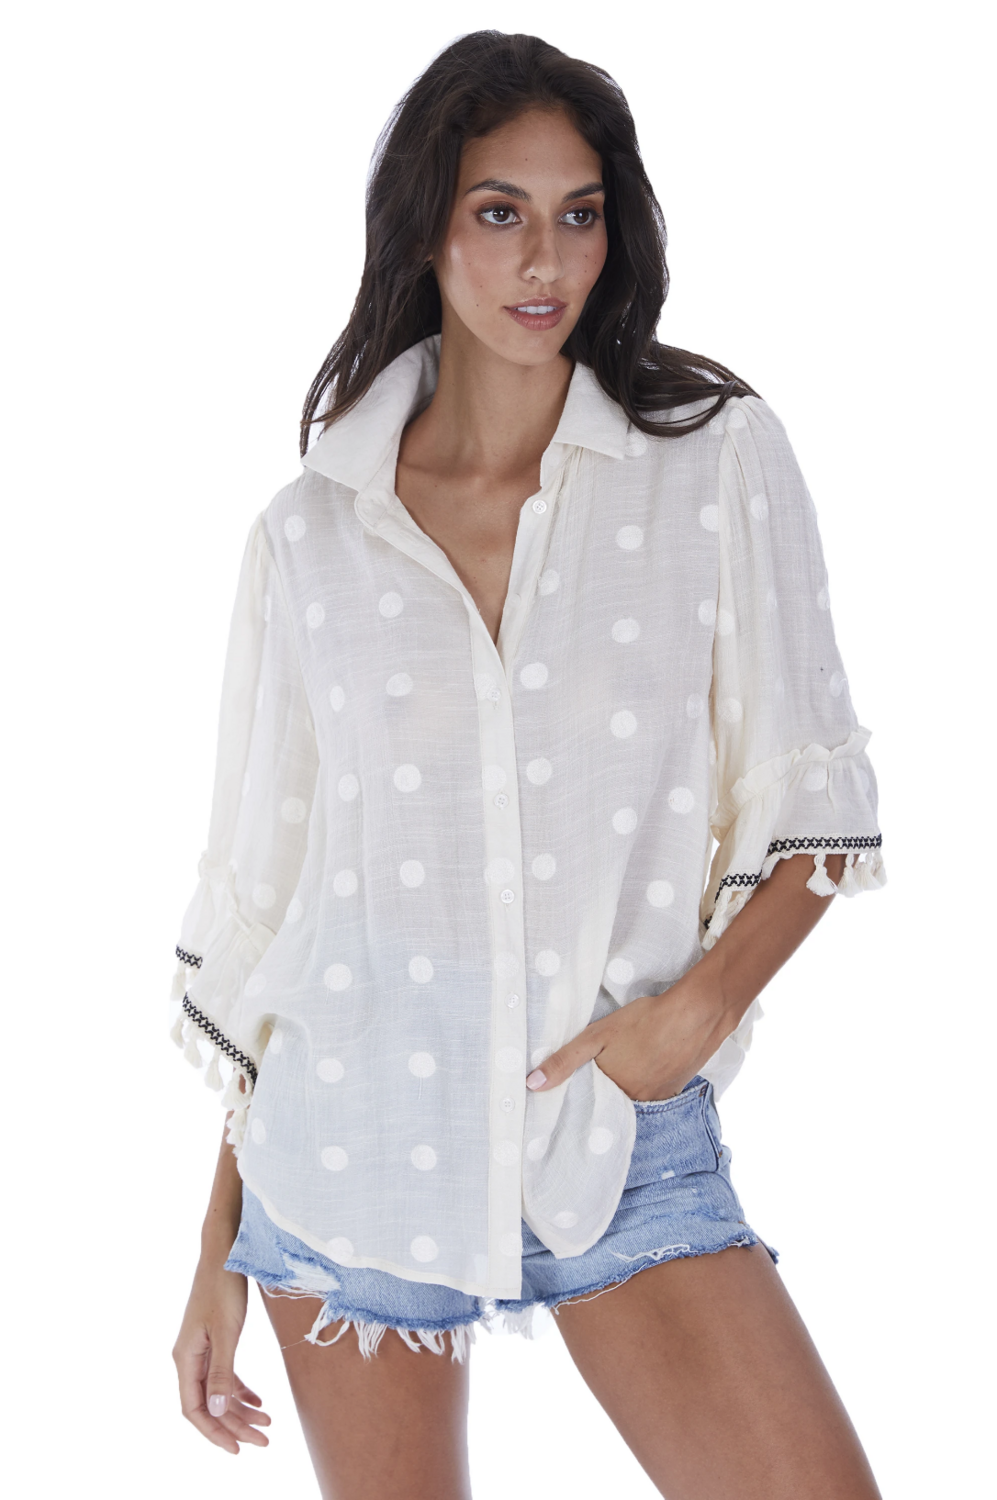 Allison Polka dotted blouse w/ bell sleeves